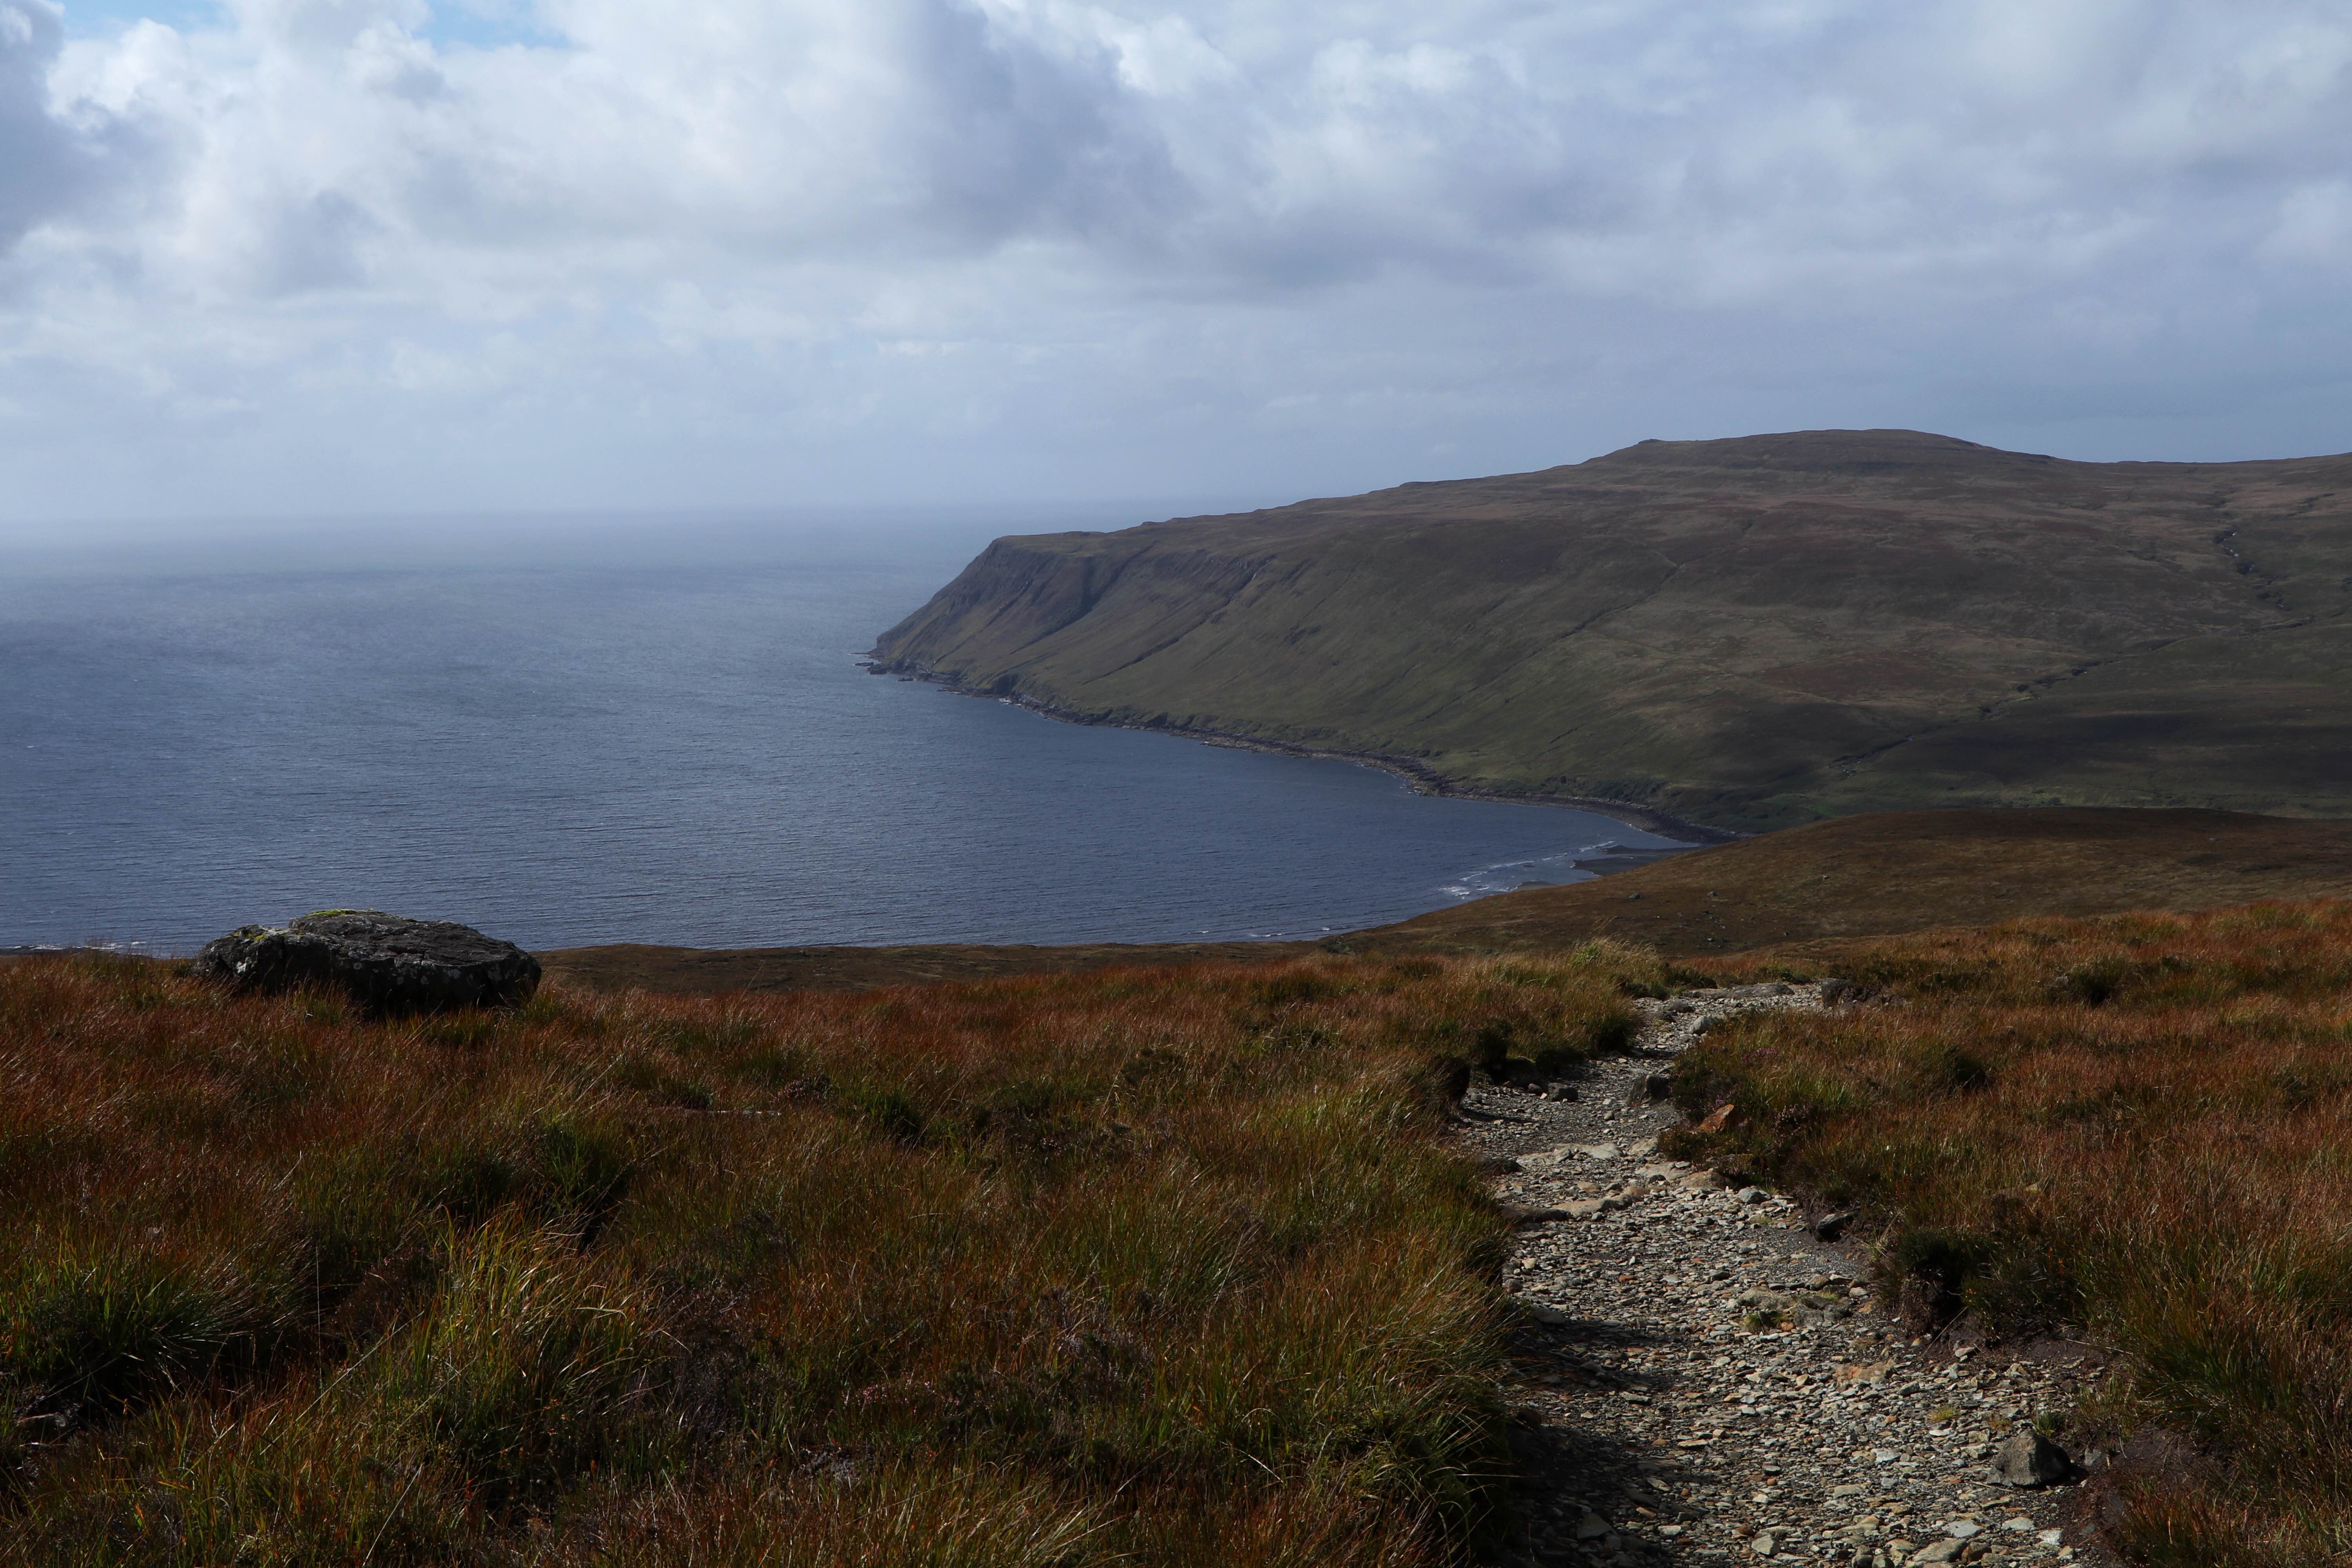 The way down to Glen Brittle Beach from Coire Lagan, Isle of Skye ECF